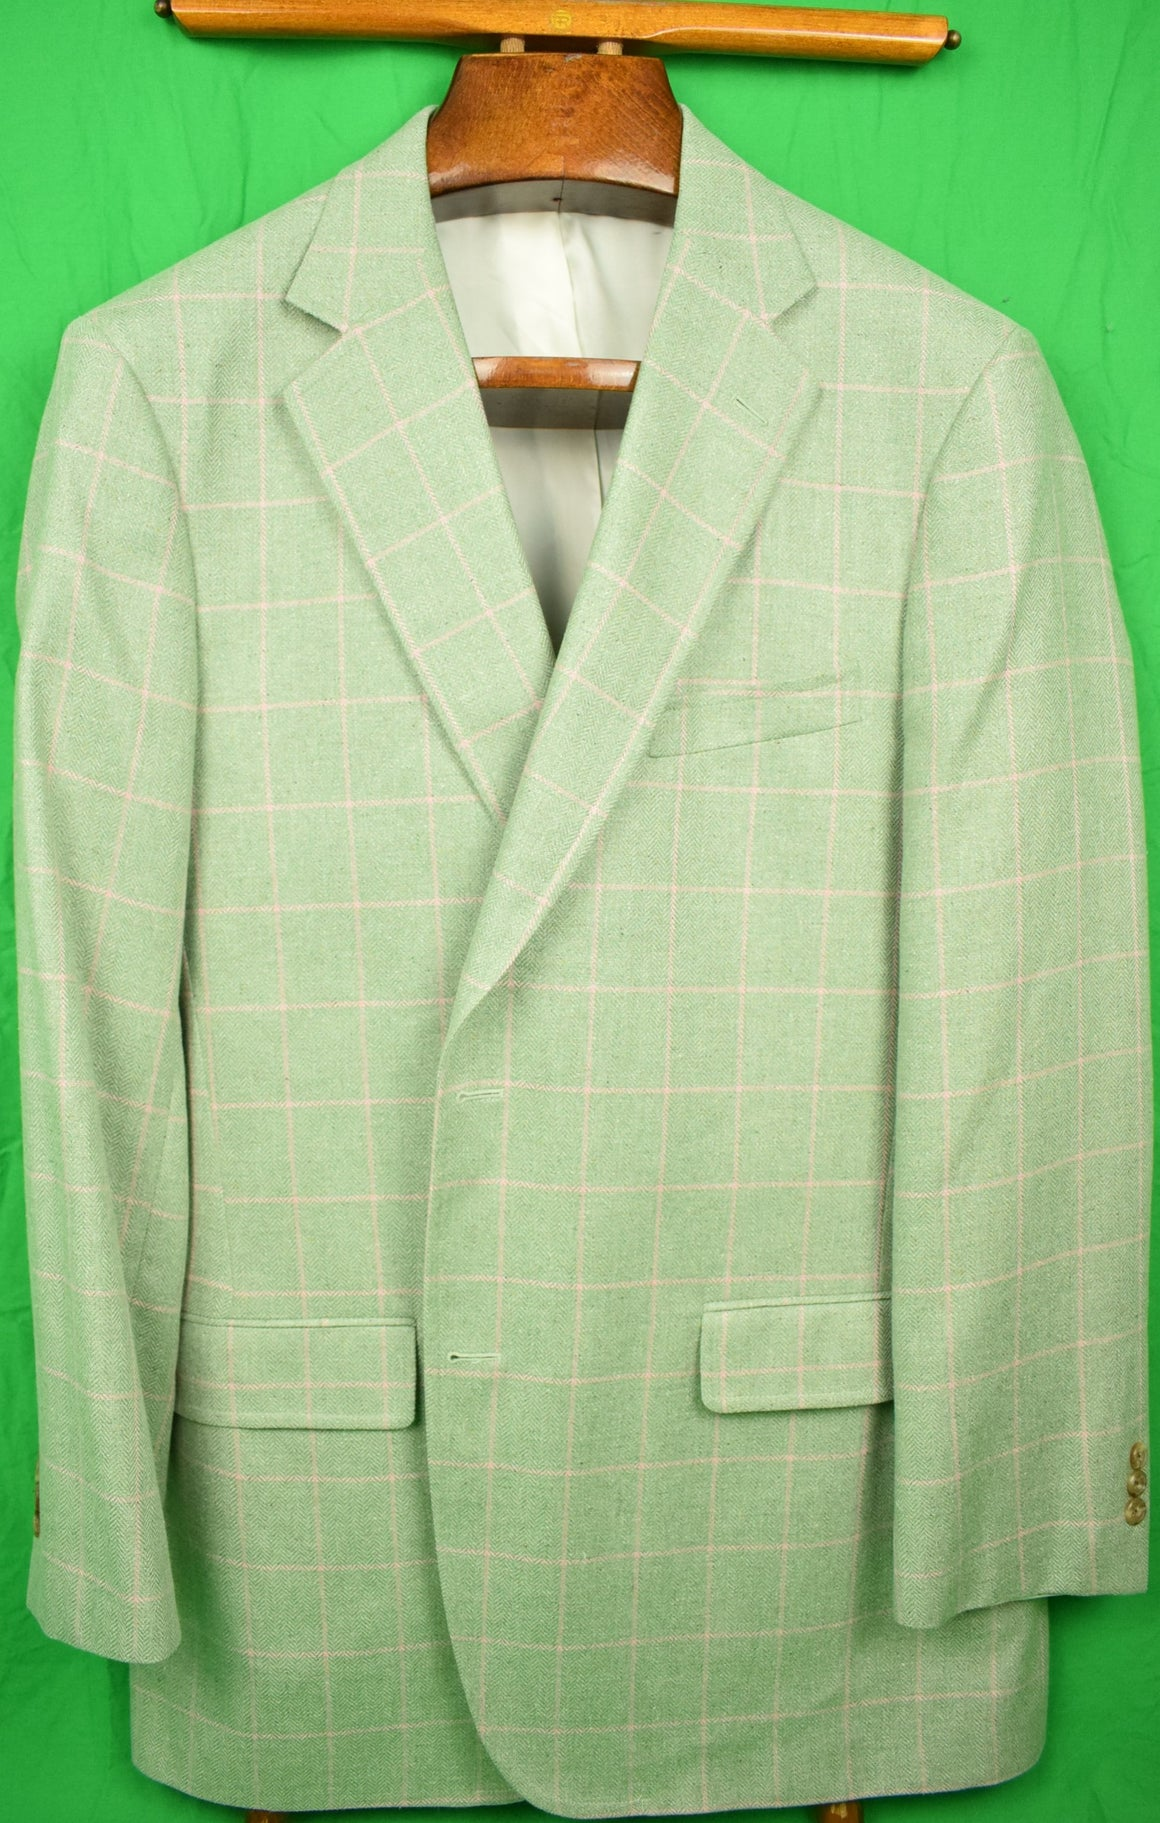 The Andover Shop Pink Windowpane w/ Celadon Herringbone Silk Sport Jacket Sz: 44 Lng New w/ Tag!